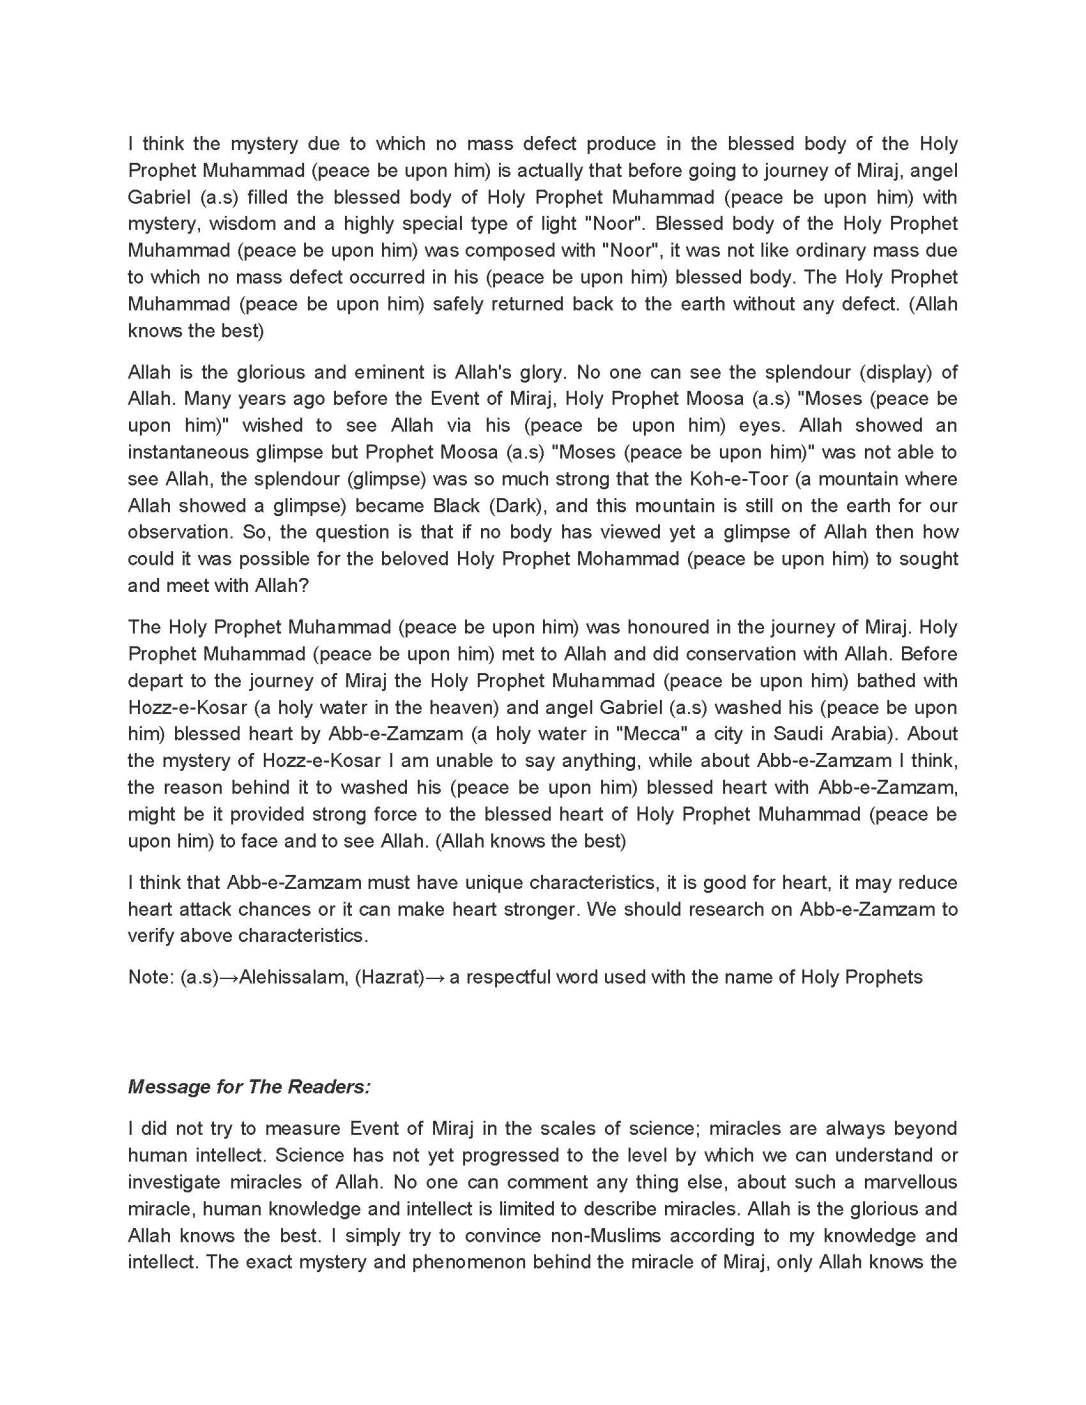 scientificexplanationfortheeventofmiraj-130324070613-phpapp01_Page_6